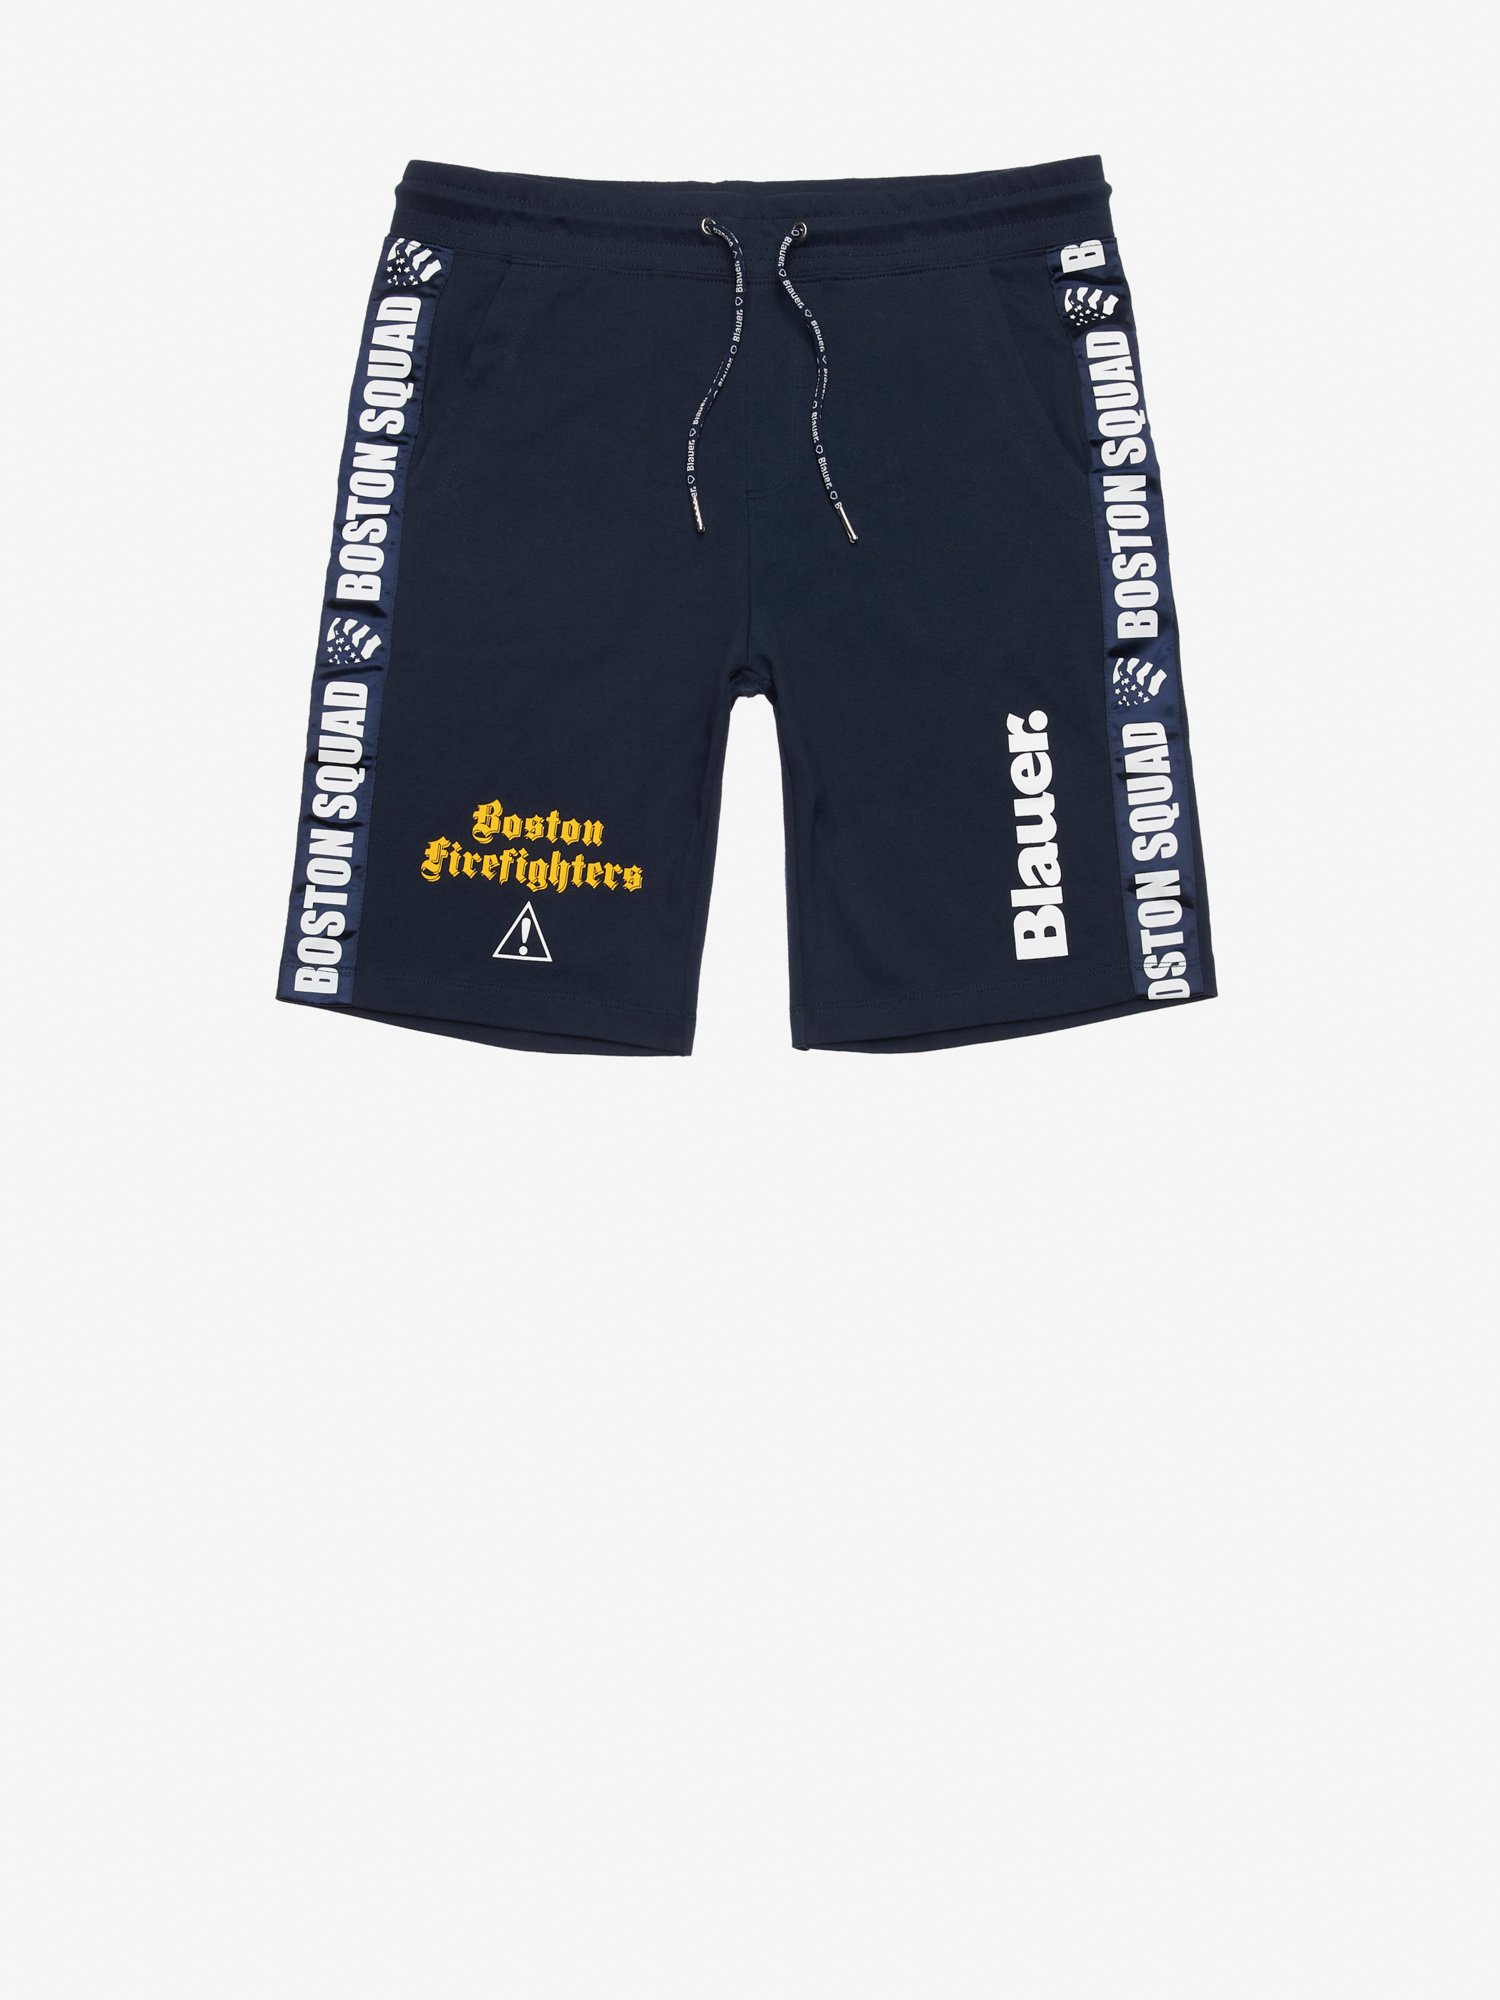 BOSTON SQUAD SHORTS - Blauer